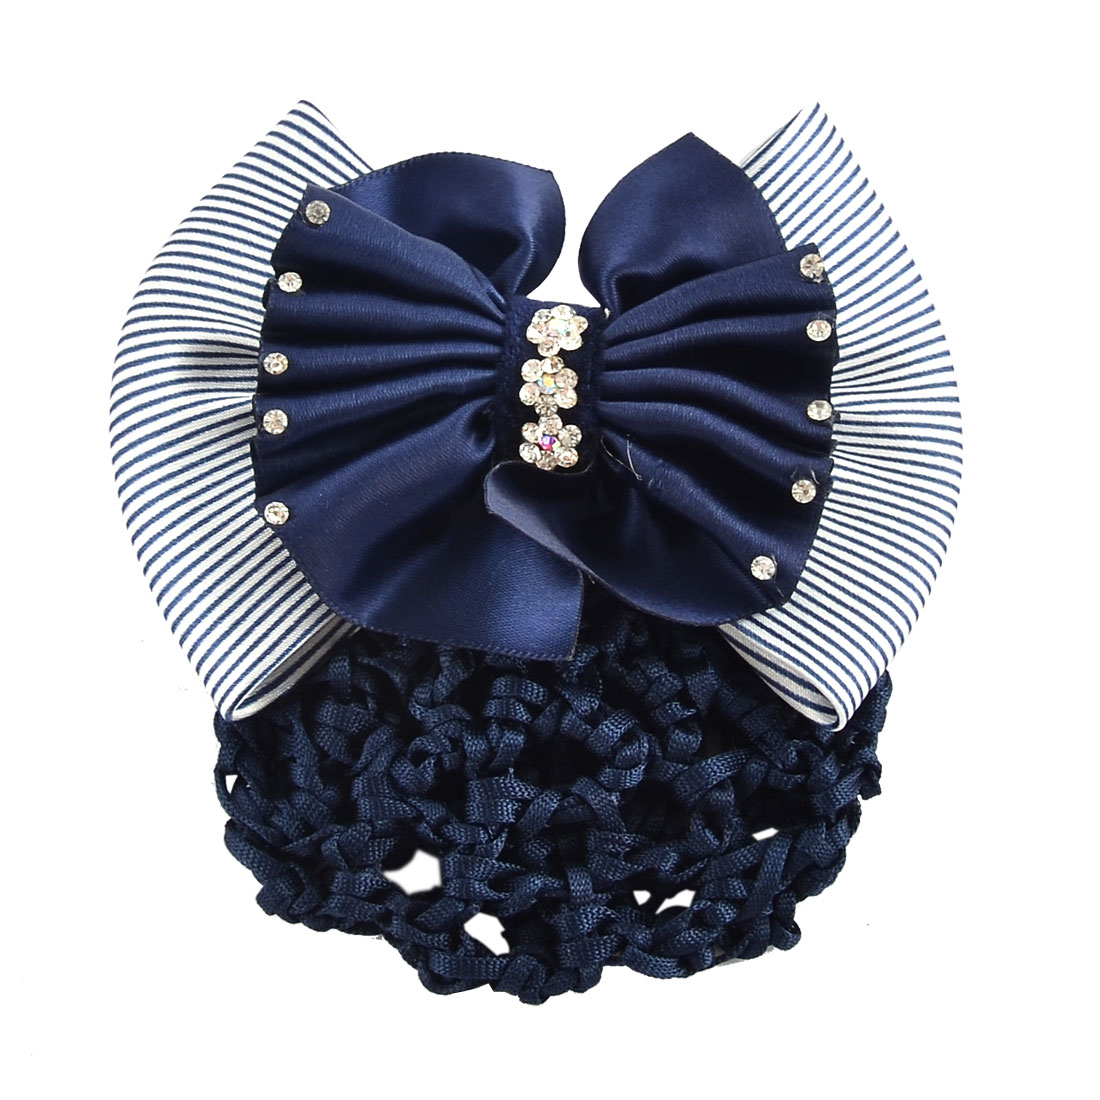 Women Hairstyle Stripes Pattern Bowtie Decor Snood Hair Clip Holder Dark Blue